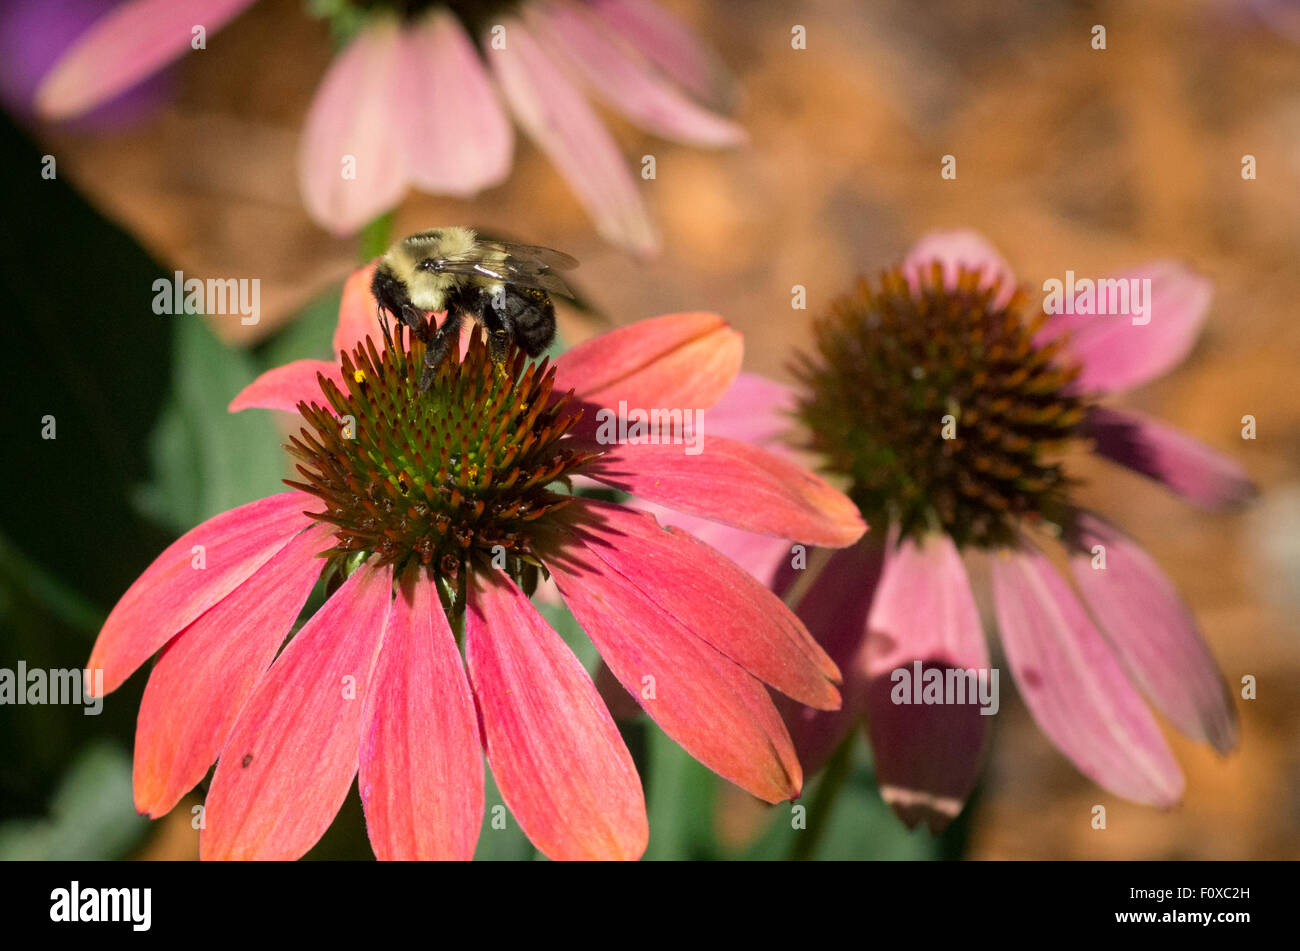 A bumble bee searching for nectar from Purple Cone Flower or Echinacea Purpurea in Minnesota, USA - Stock Image